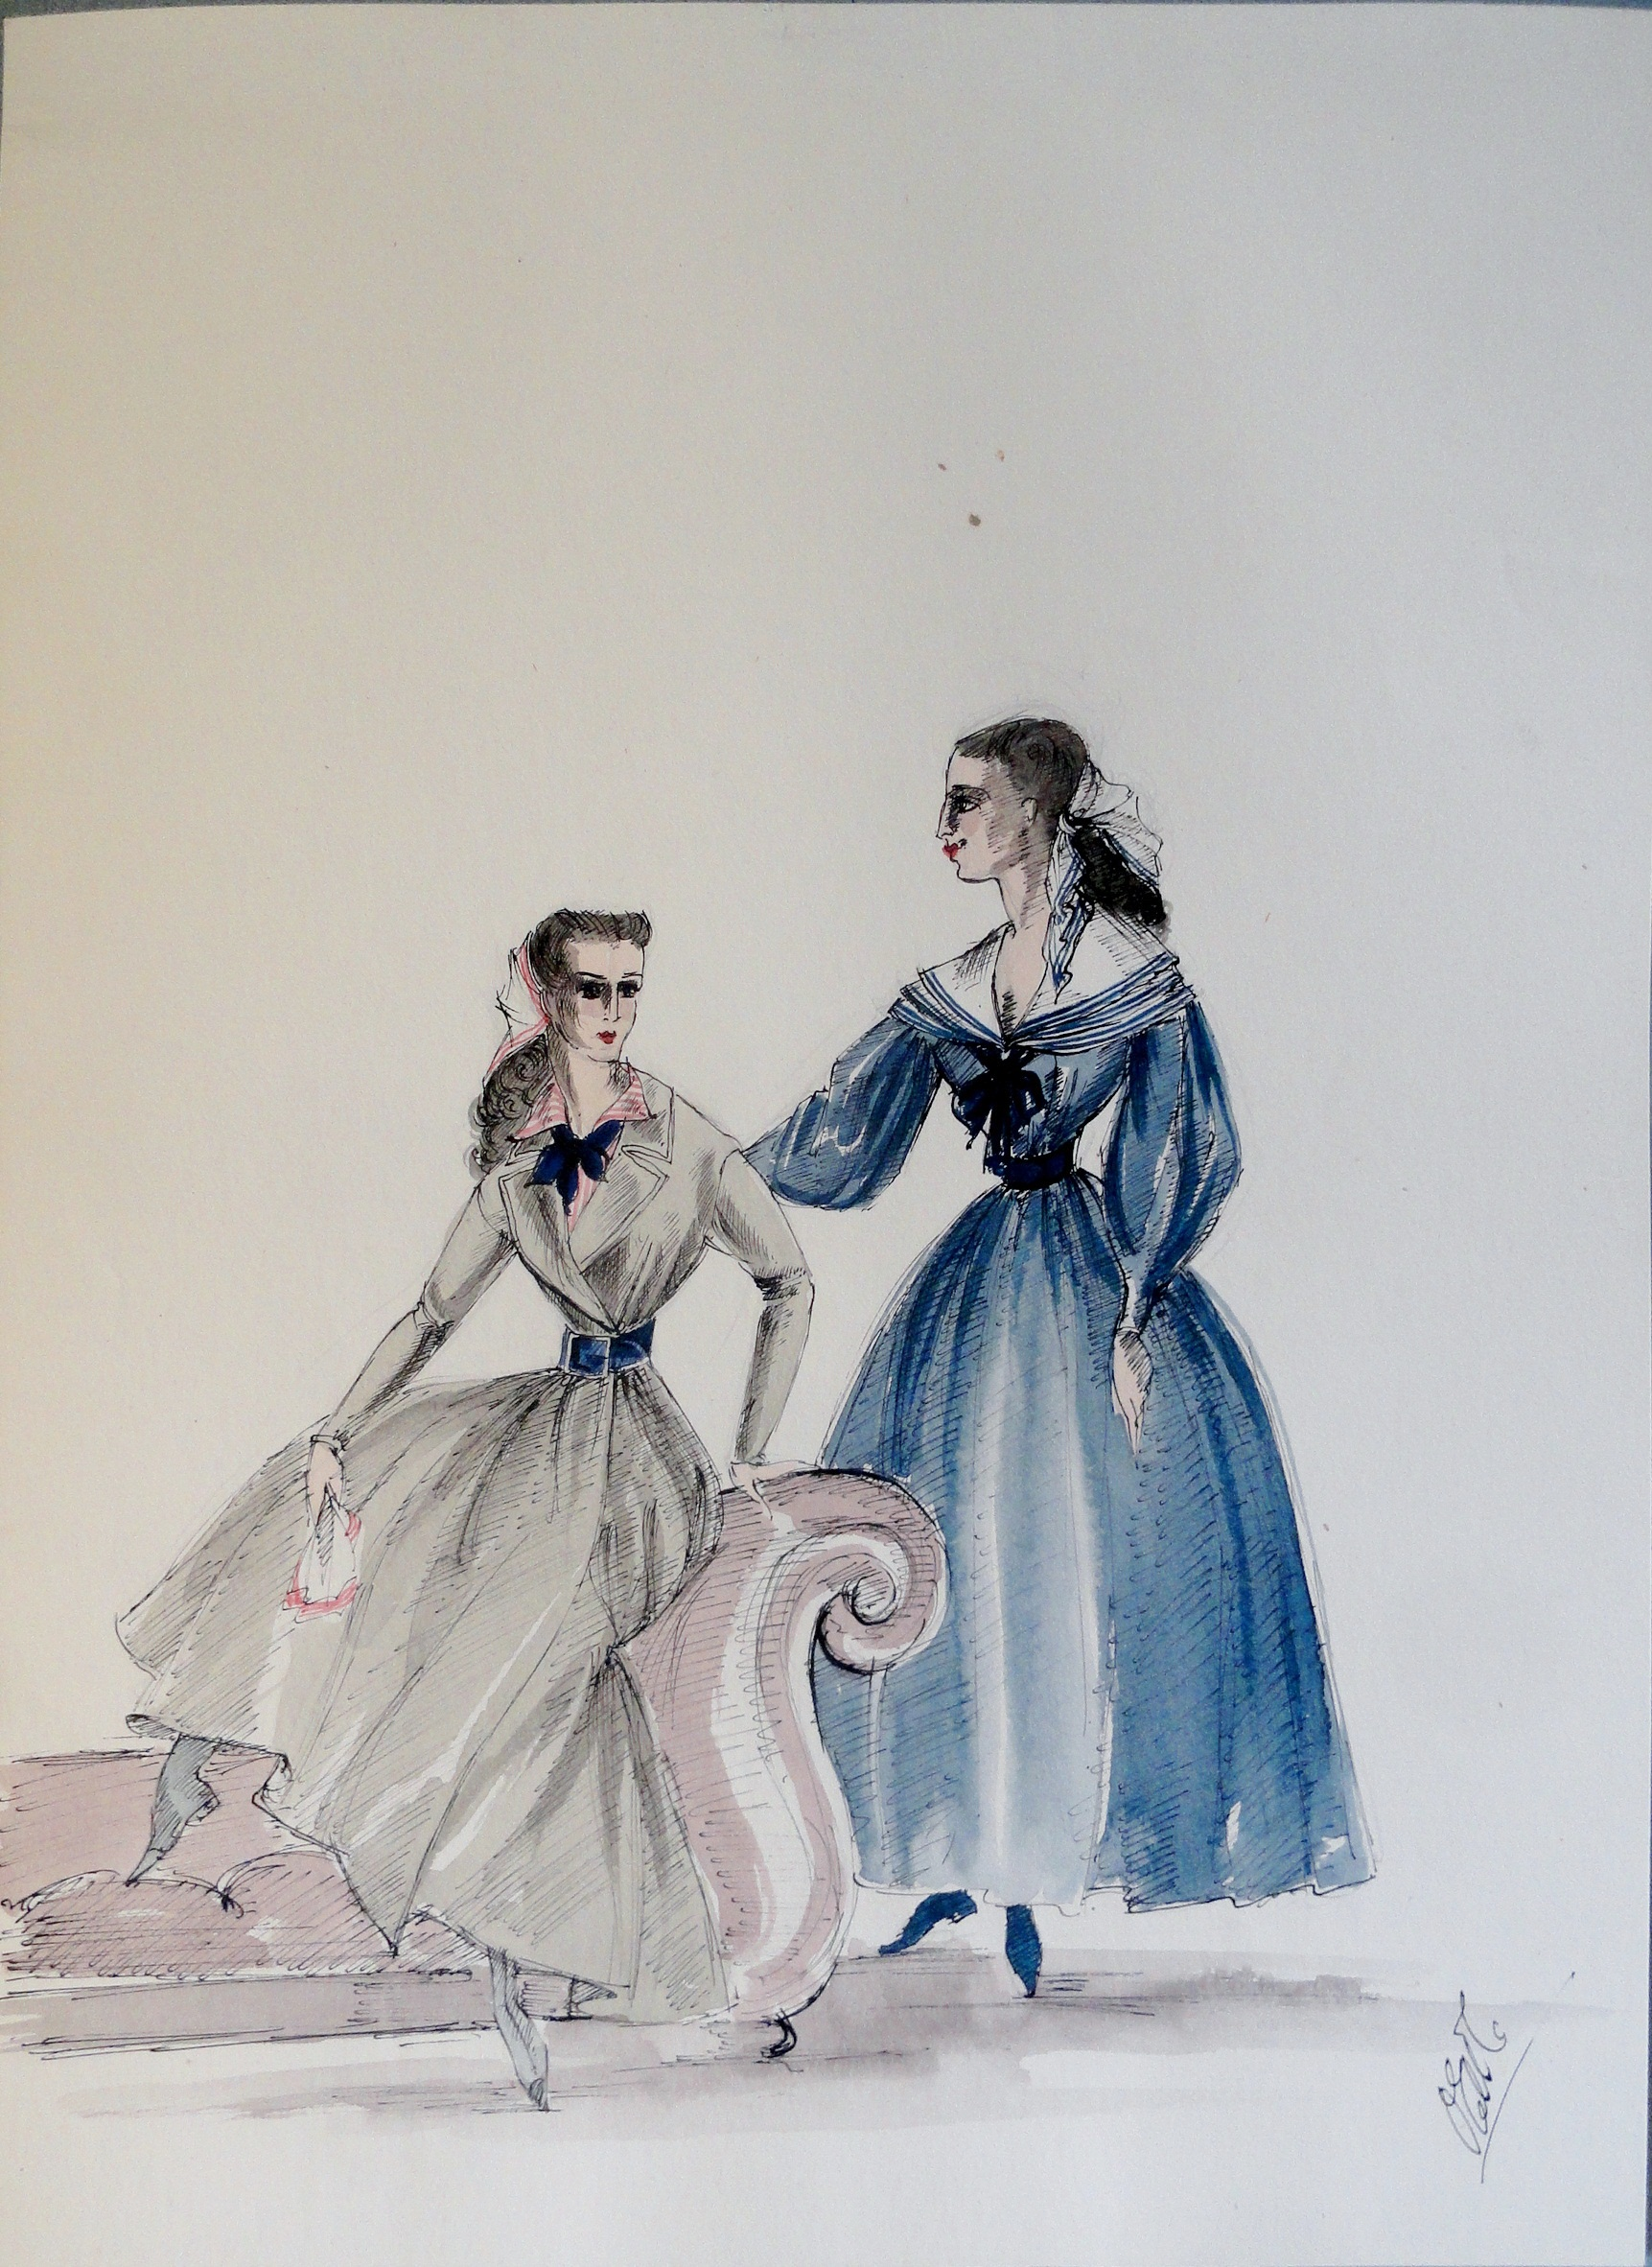 Rachel and sister in green and blue dresses at sofa. Pen and ink and watercolor. From the Rachel Portfolio by Owen Hyde Clark. Signed. $150.00.